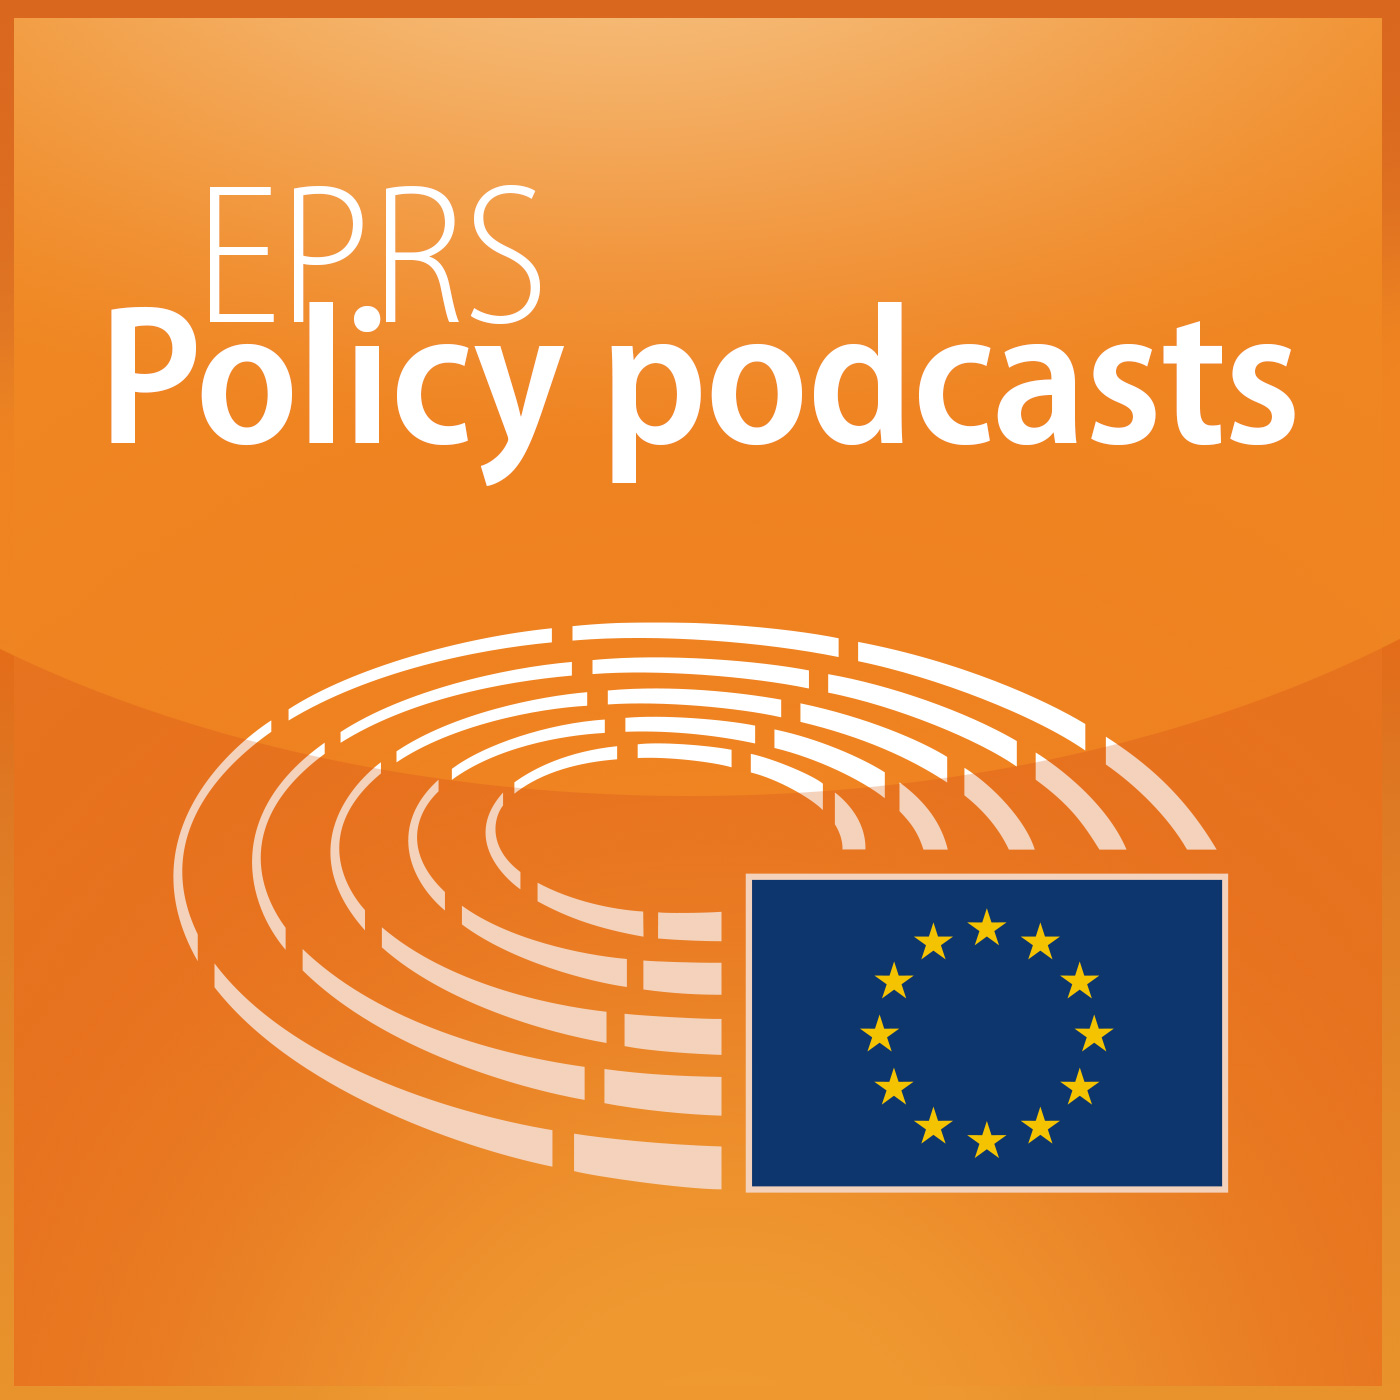 EPRS policy podcasts